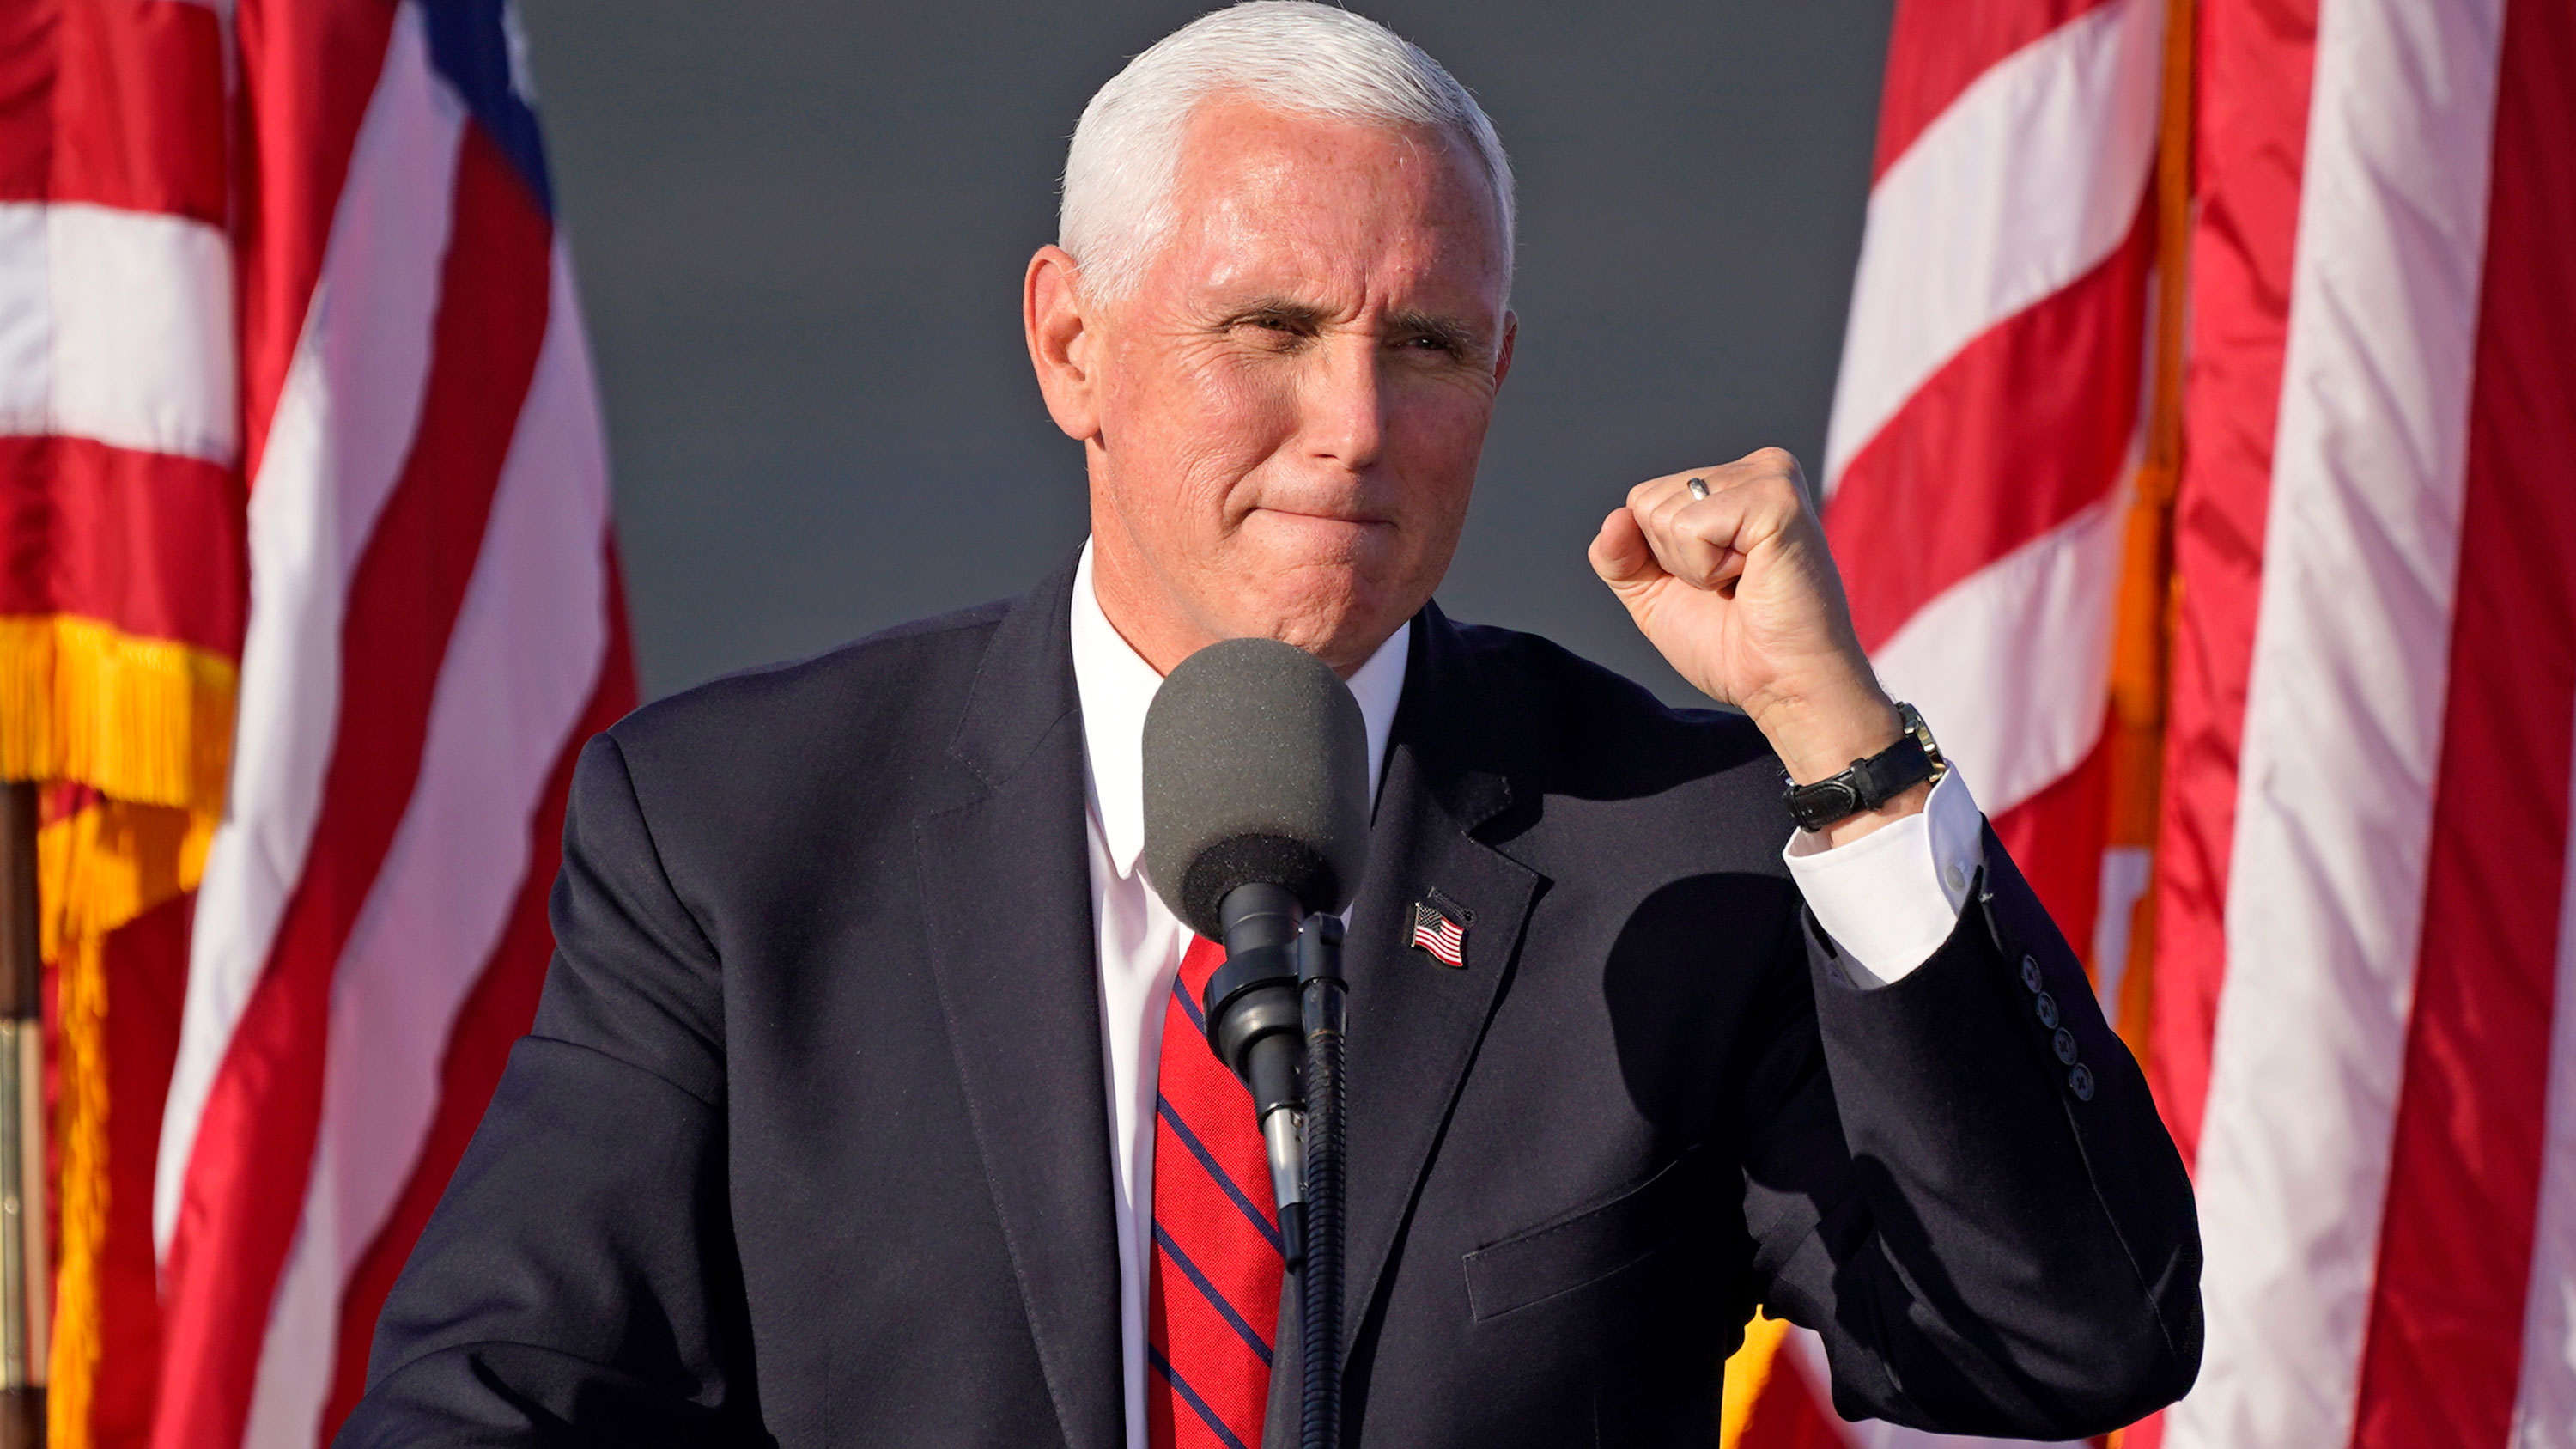 Vice President Mike Pence delivers remarks at a campaign rally in West Mifflin, Pennsylvania, on October 23.